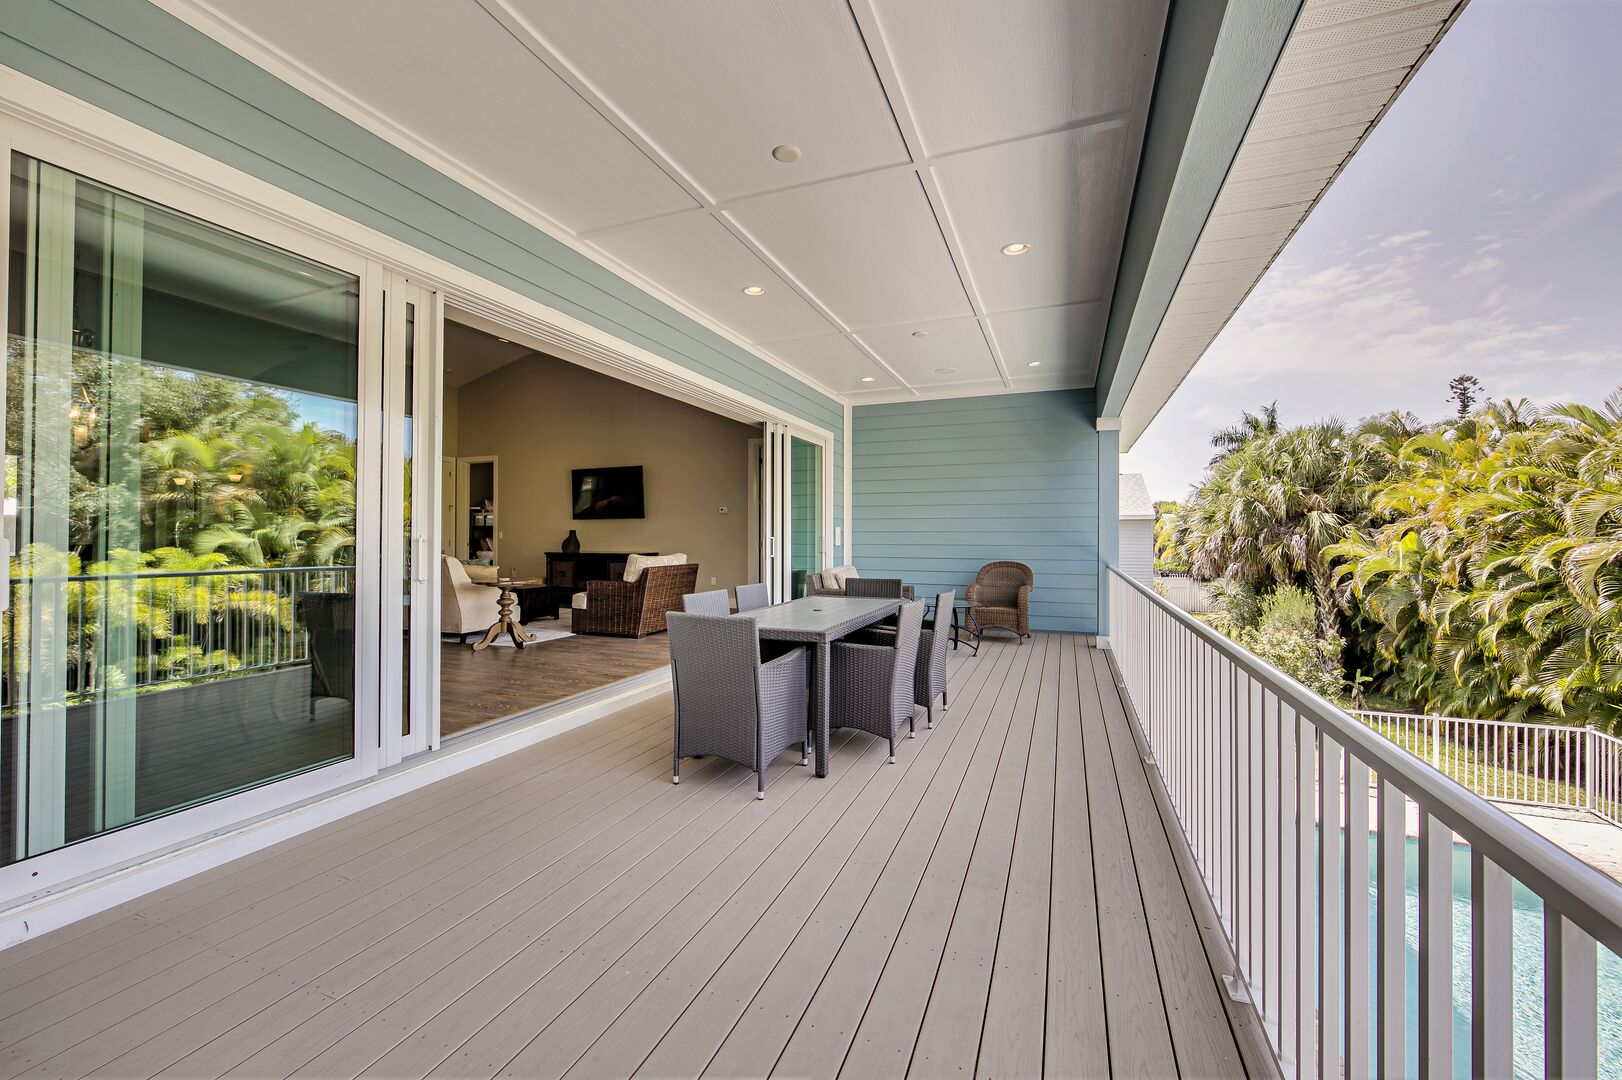 Outdoor seating for six at this vacation rental near Fort Myers Beach